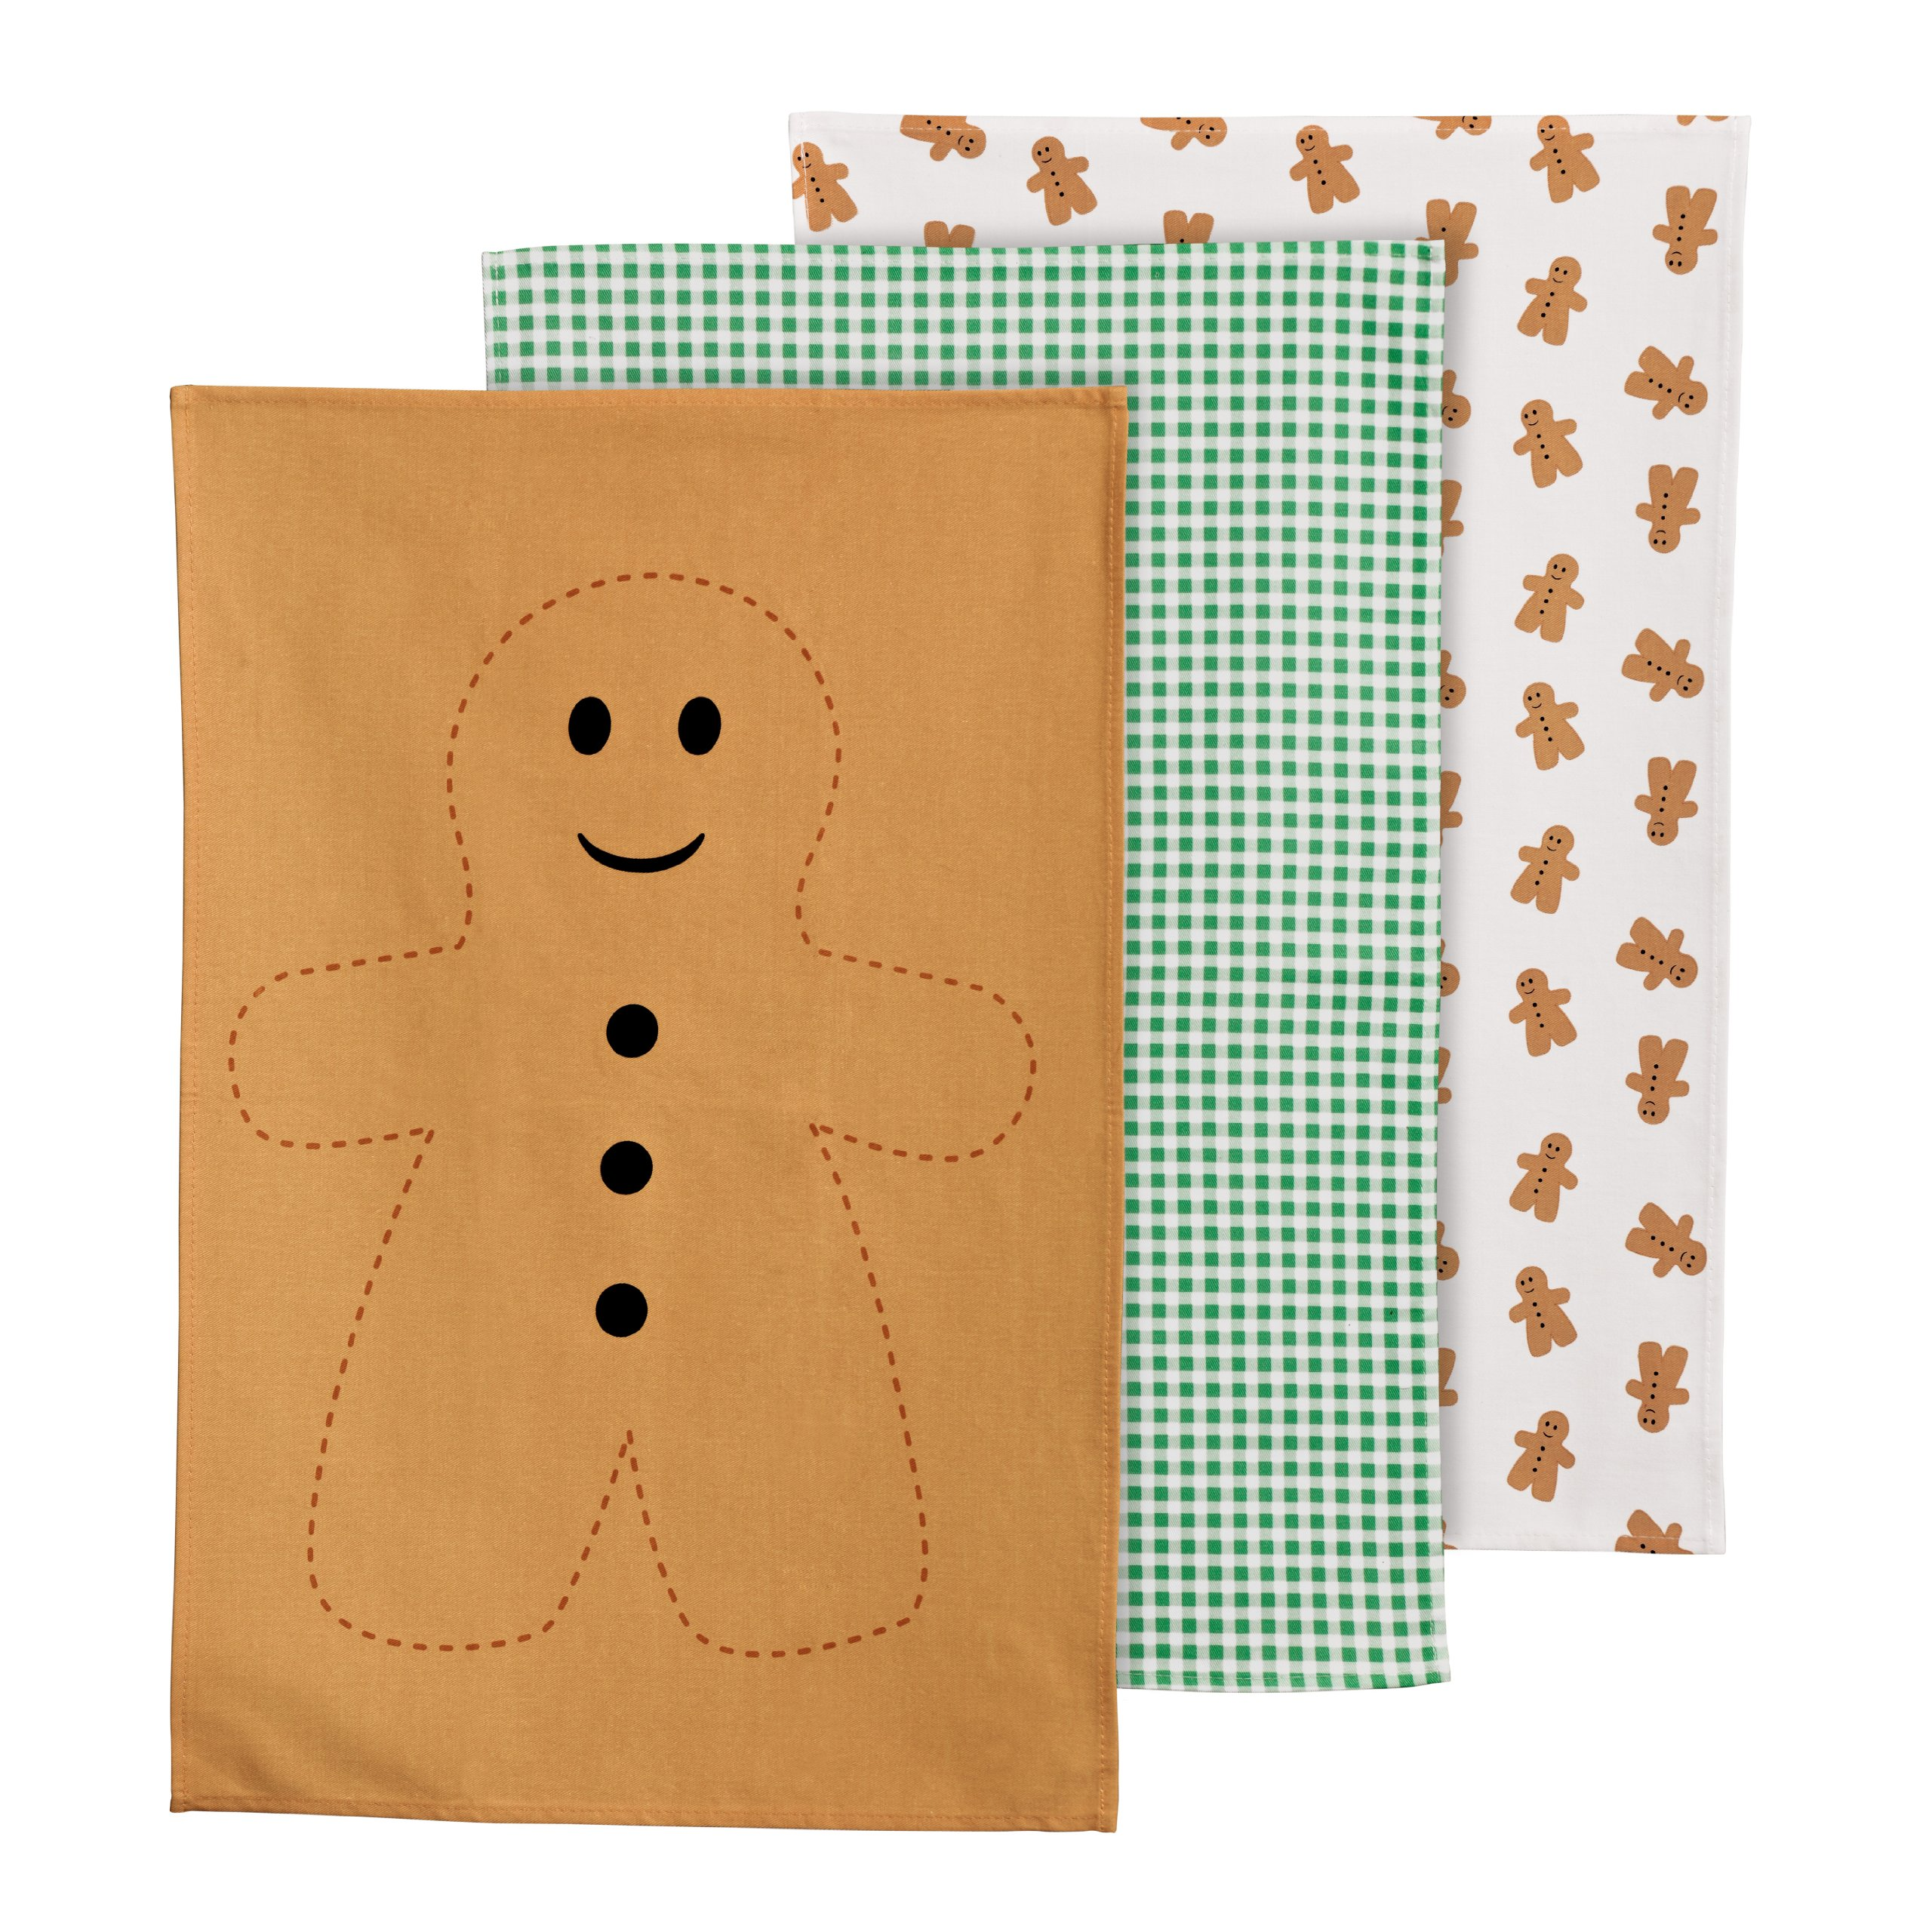 Premier Housewares Gingerbread Man Tea Towels - Set of 3 by Rubiesofuk